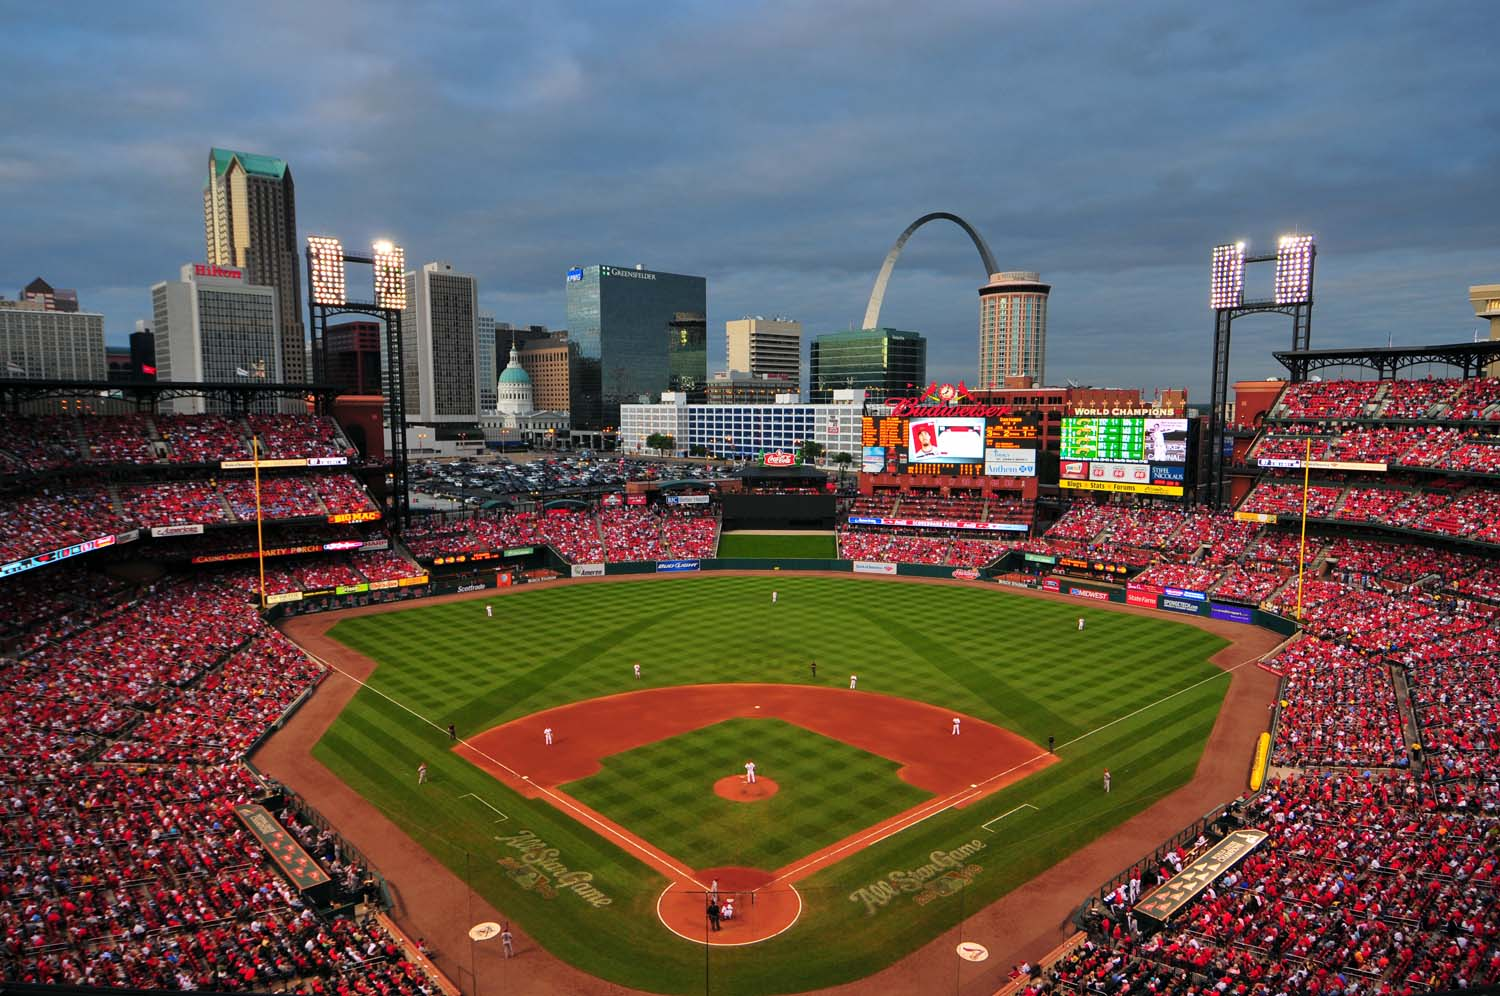 Busch Stadium wallpaper 211016 1500x996